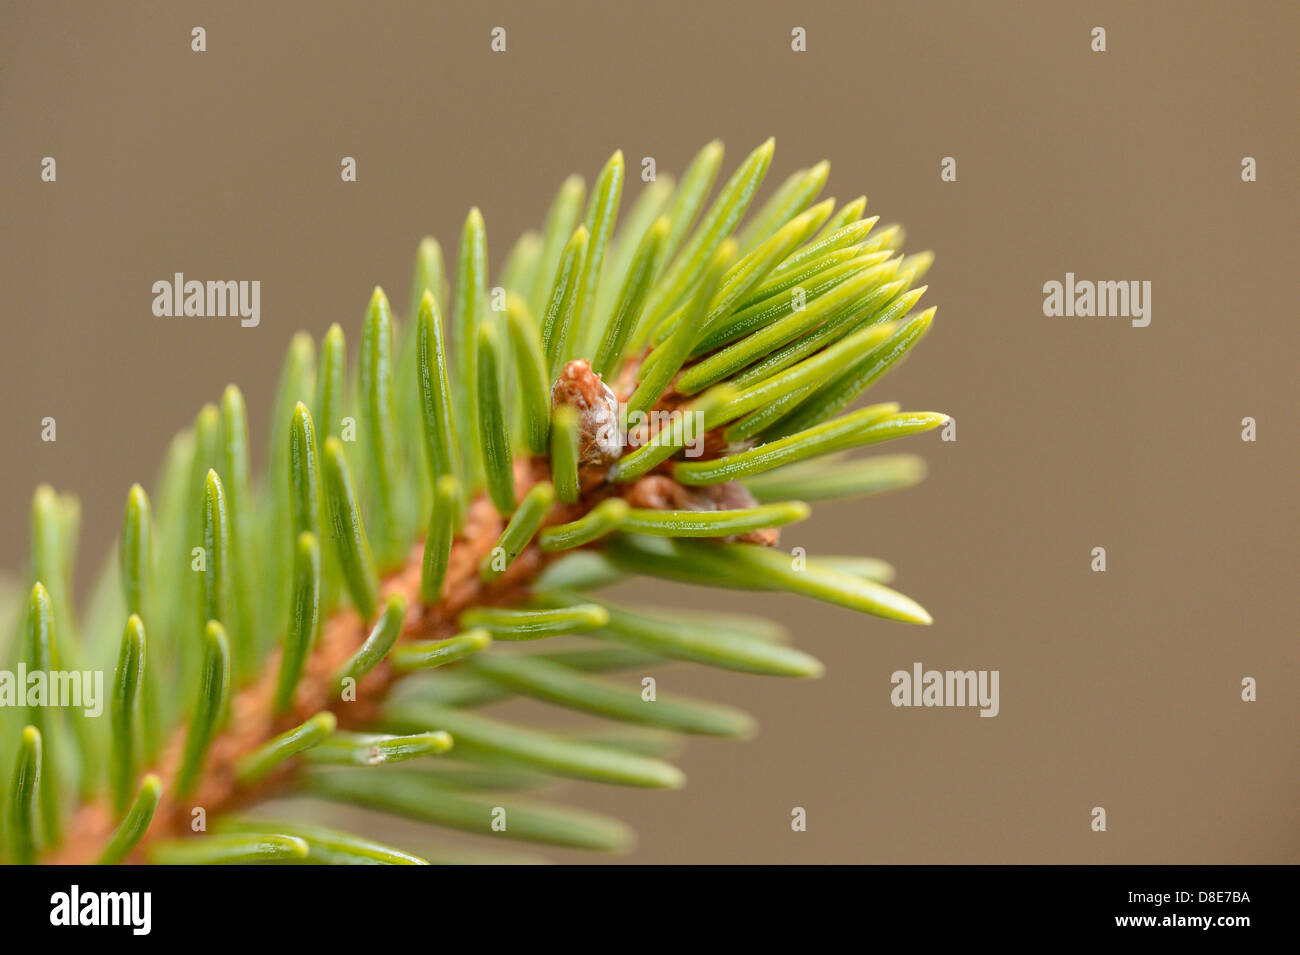 Branch from a Norway Spruce (Picea abies), close-up Stock Photo